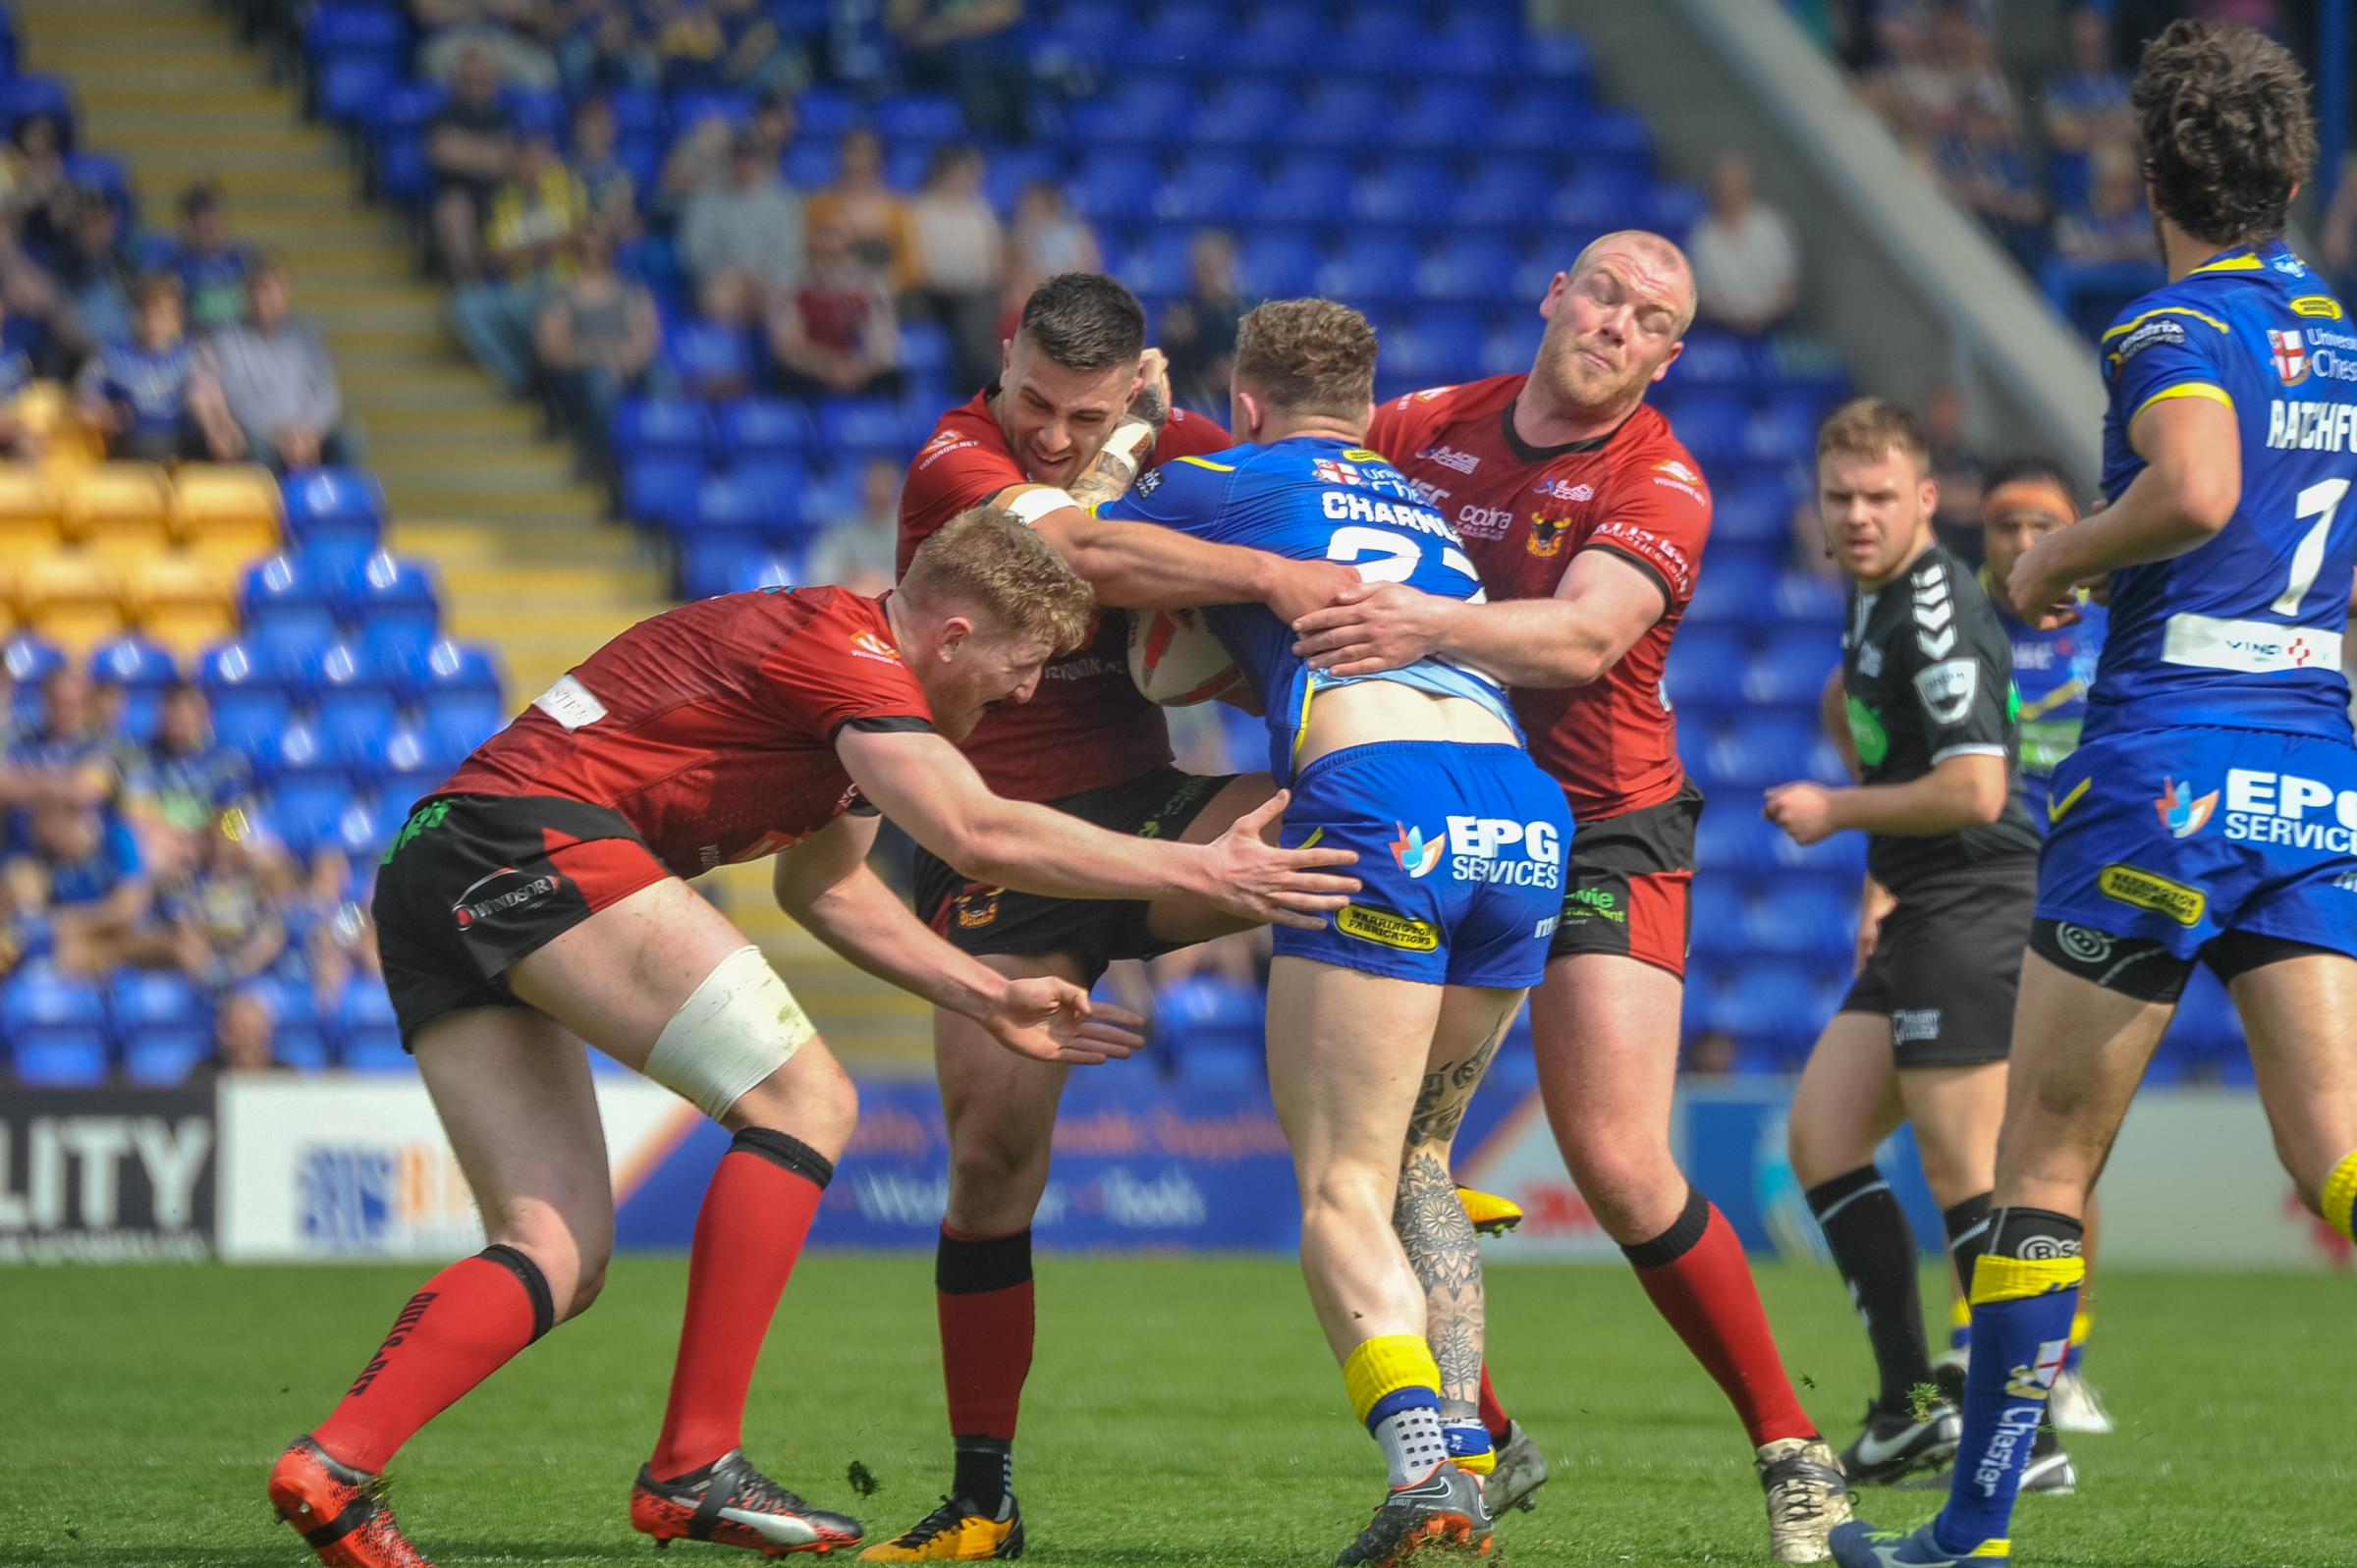 Steve Crossley, right, leads a three-man Bulls attempt to stop Warrington star man Josh Charnley